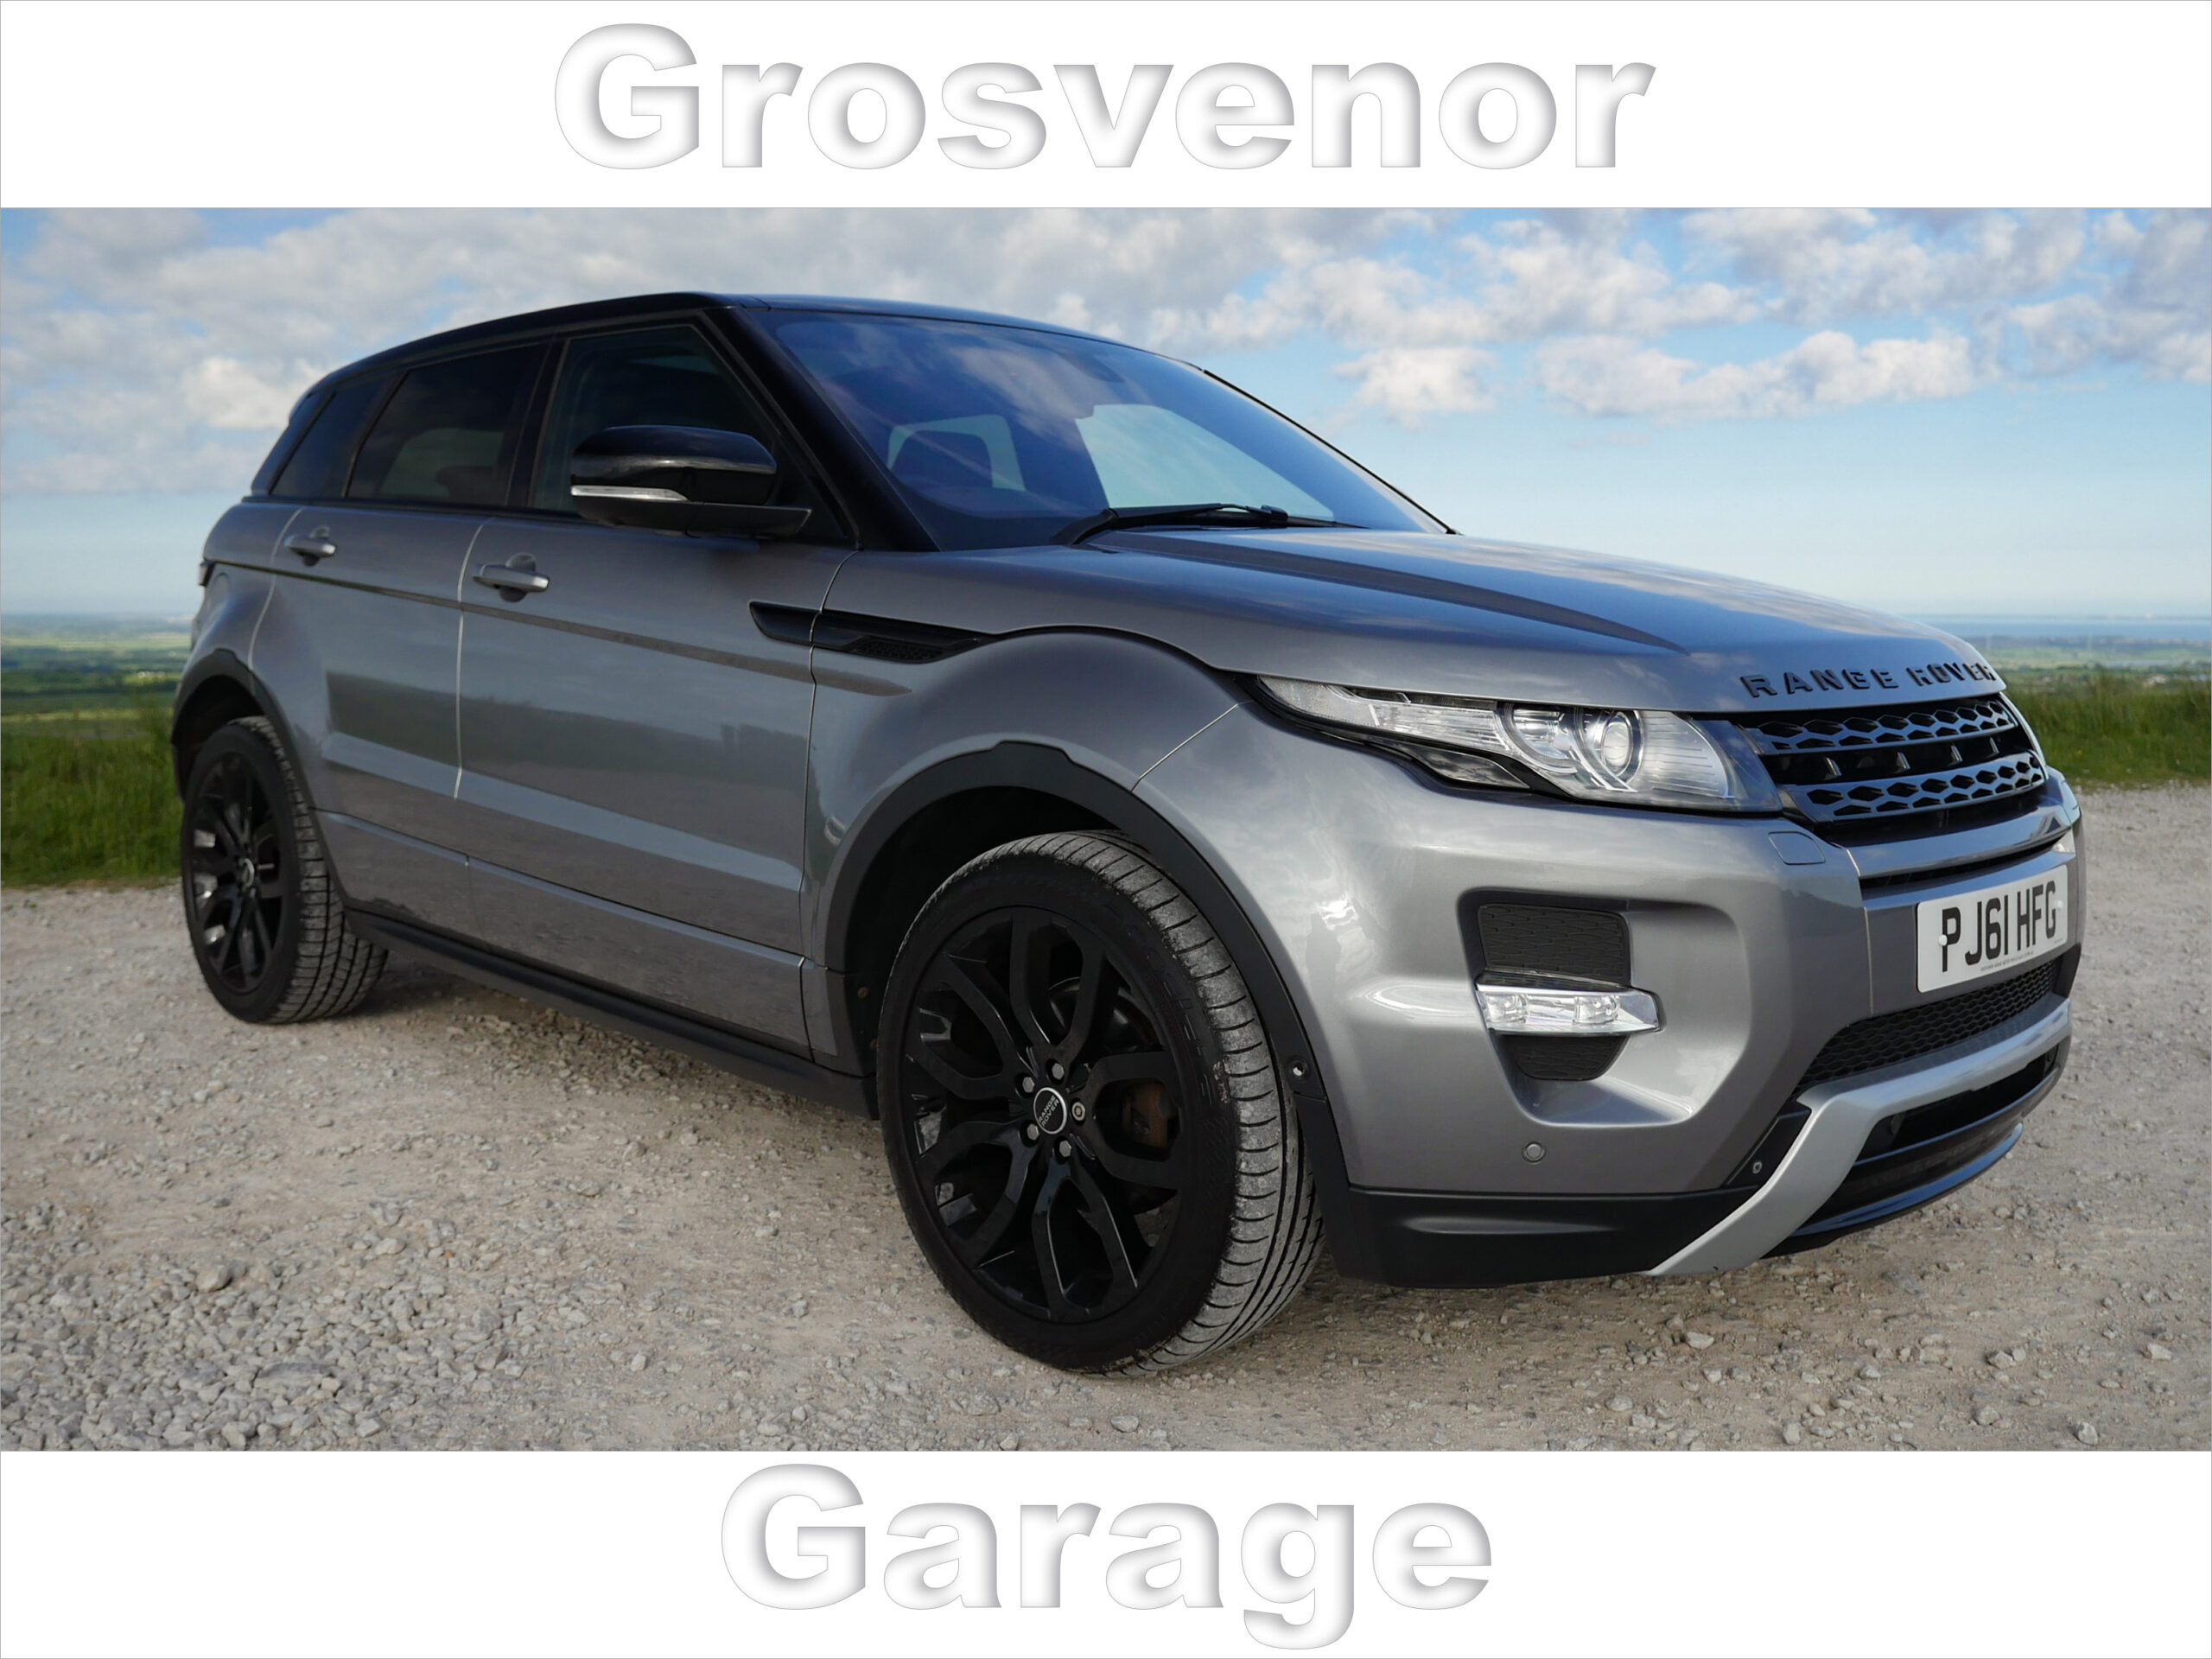 2012 (61) LAND ROVER RANGE ROVER EVOQUE 2.2 SD4 DYNAMIC LUX 5DR AUTOMATIC